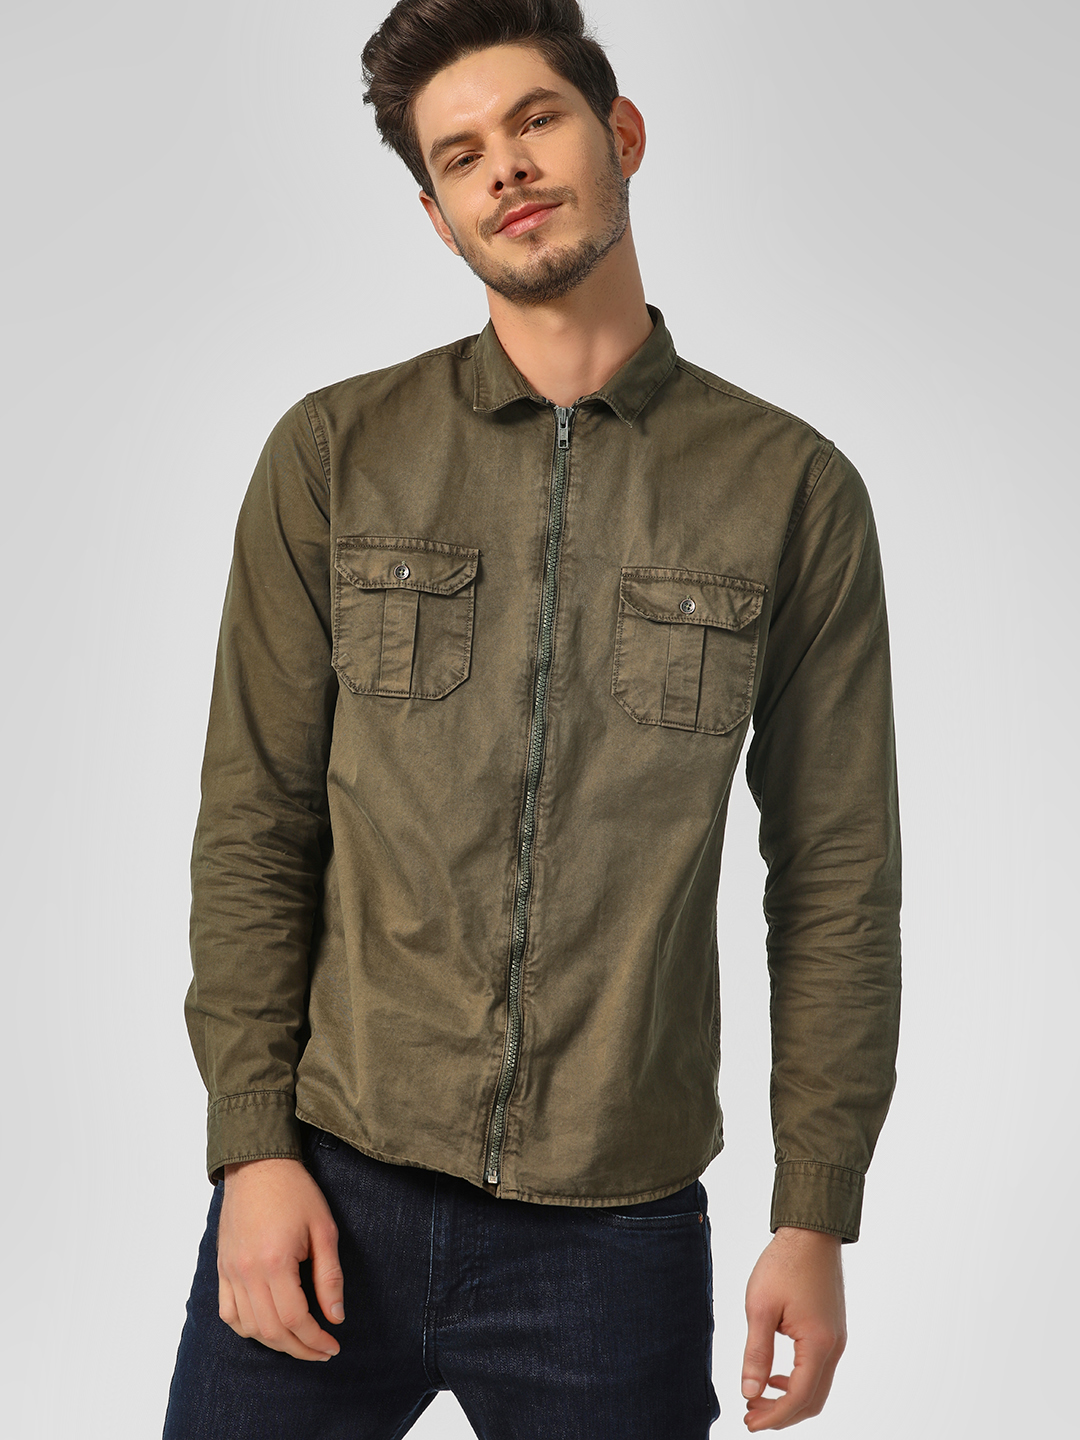 RIG Olive Zippered Front Shacket 1